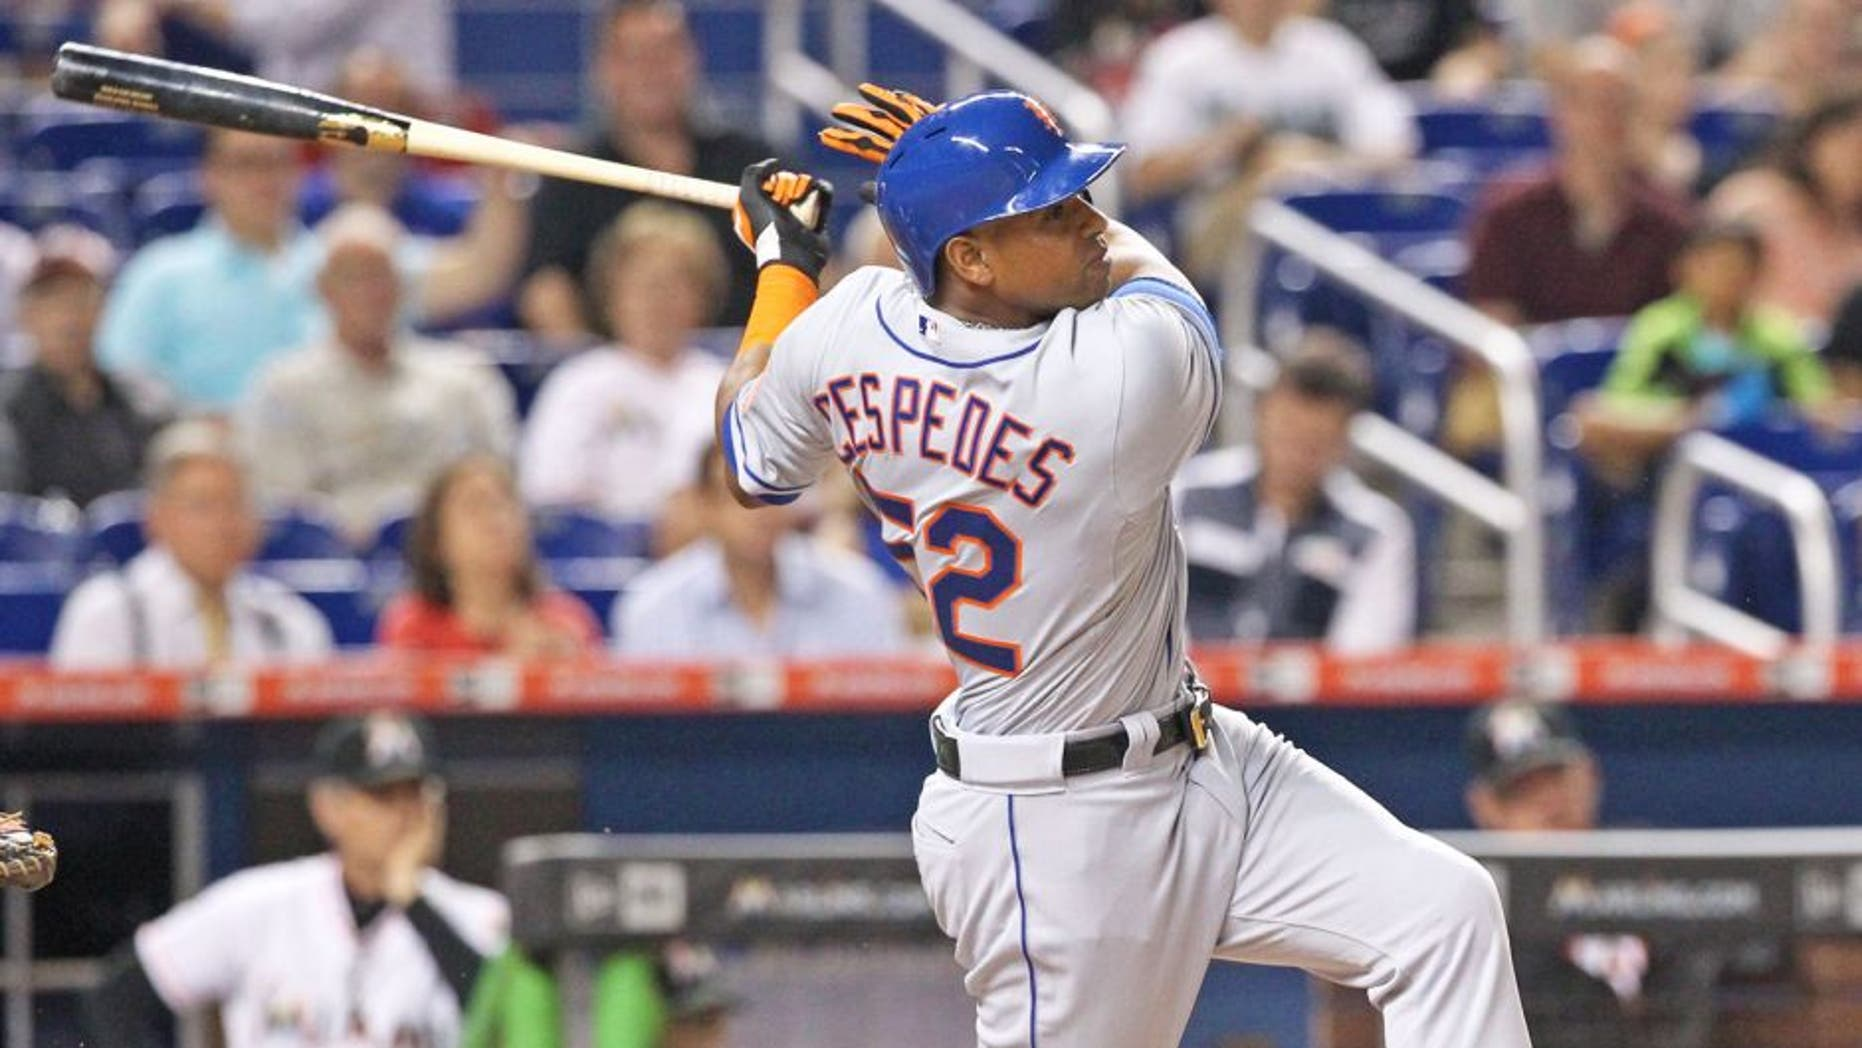 New York Mets' Yoenis Cespedes bats during the third inning on Monday, Aug. 3, 2015, at Marlins Park in Miami. (Hector Gabino/El Nuevo Herald/TNS via Getty Images)